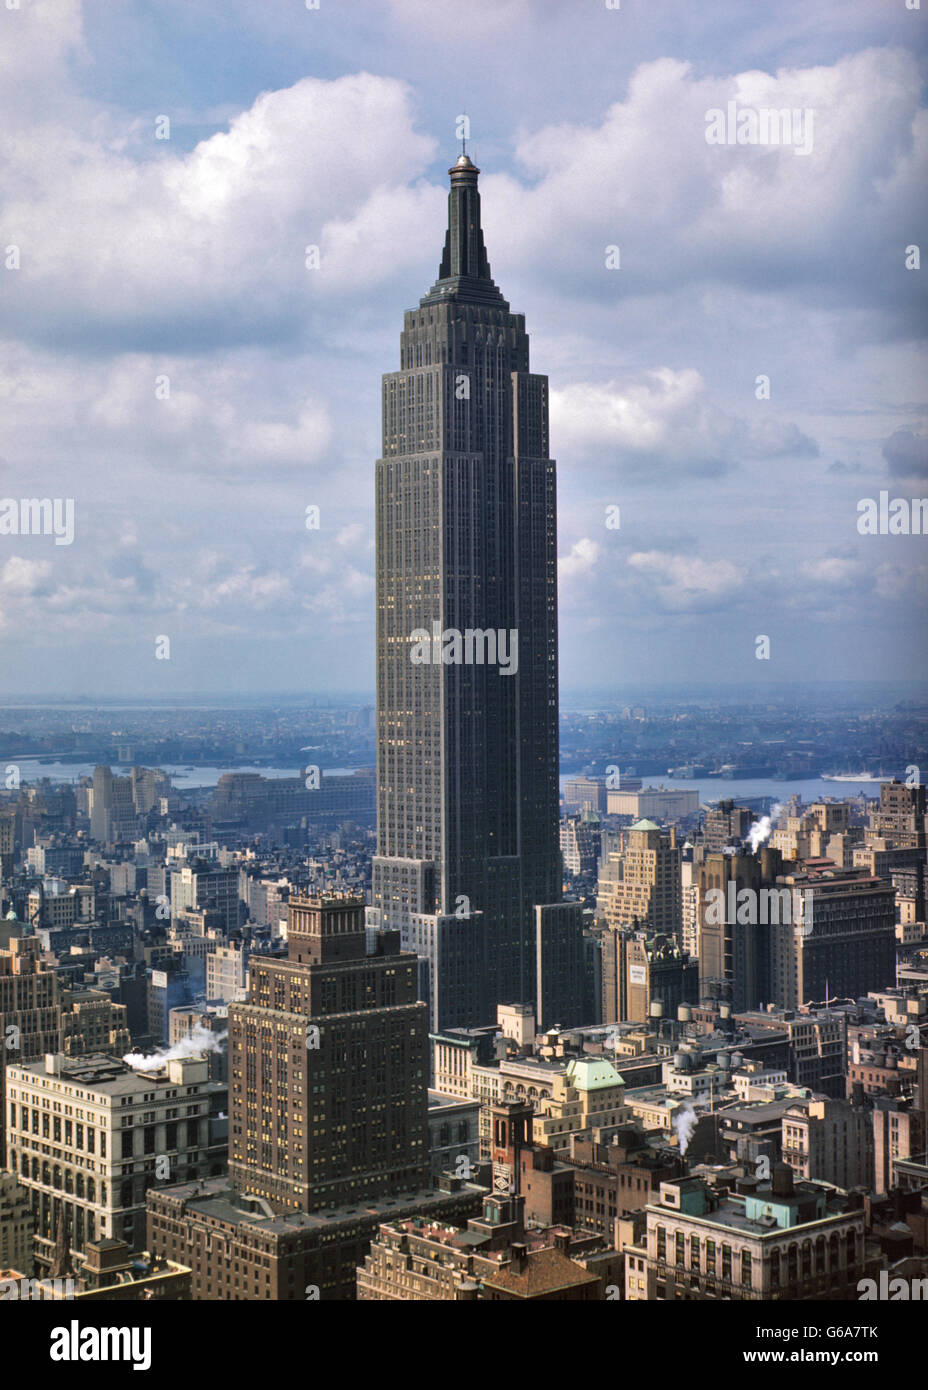 1950s EMPIRE STATE BUILDING TOWERS OVER ITS NEIGHBORS ON 34TH STREET MIDTOWN MANHATTAN NYC USA - Stock Image